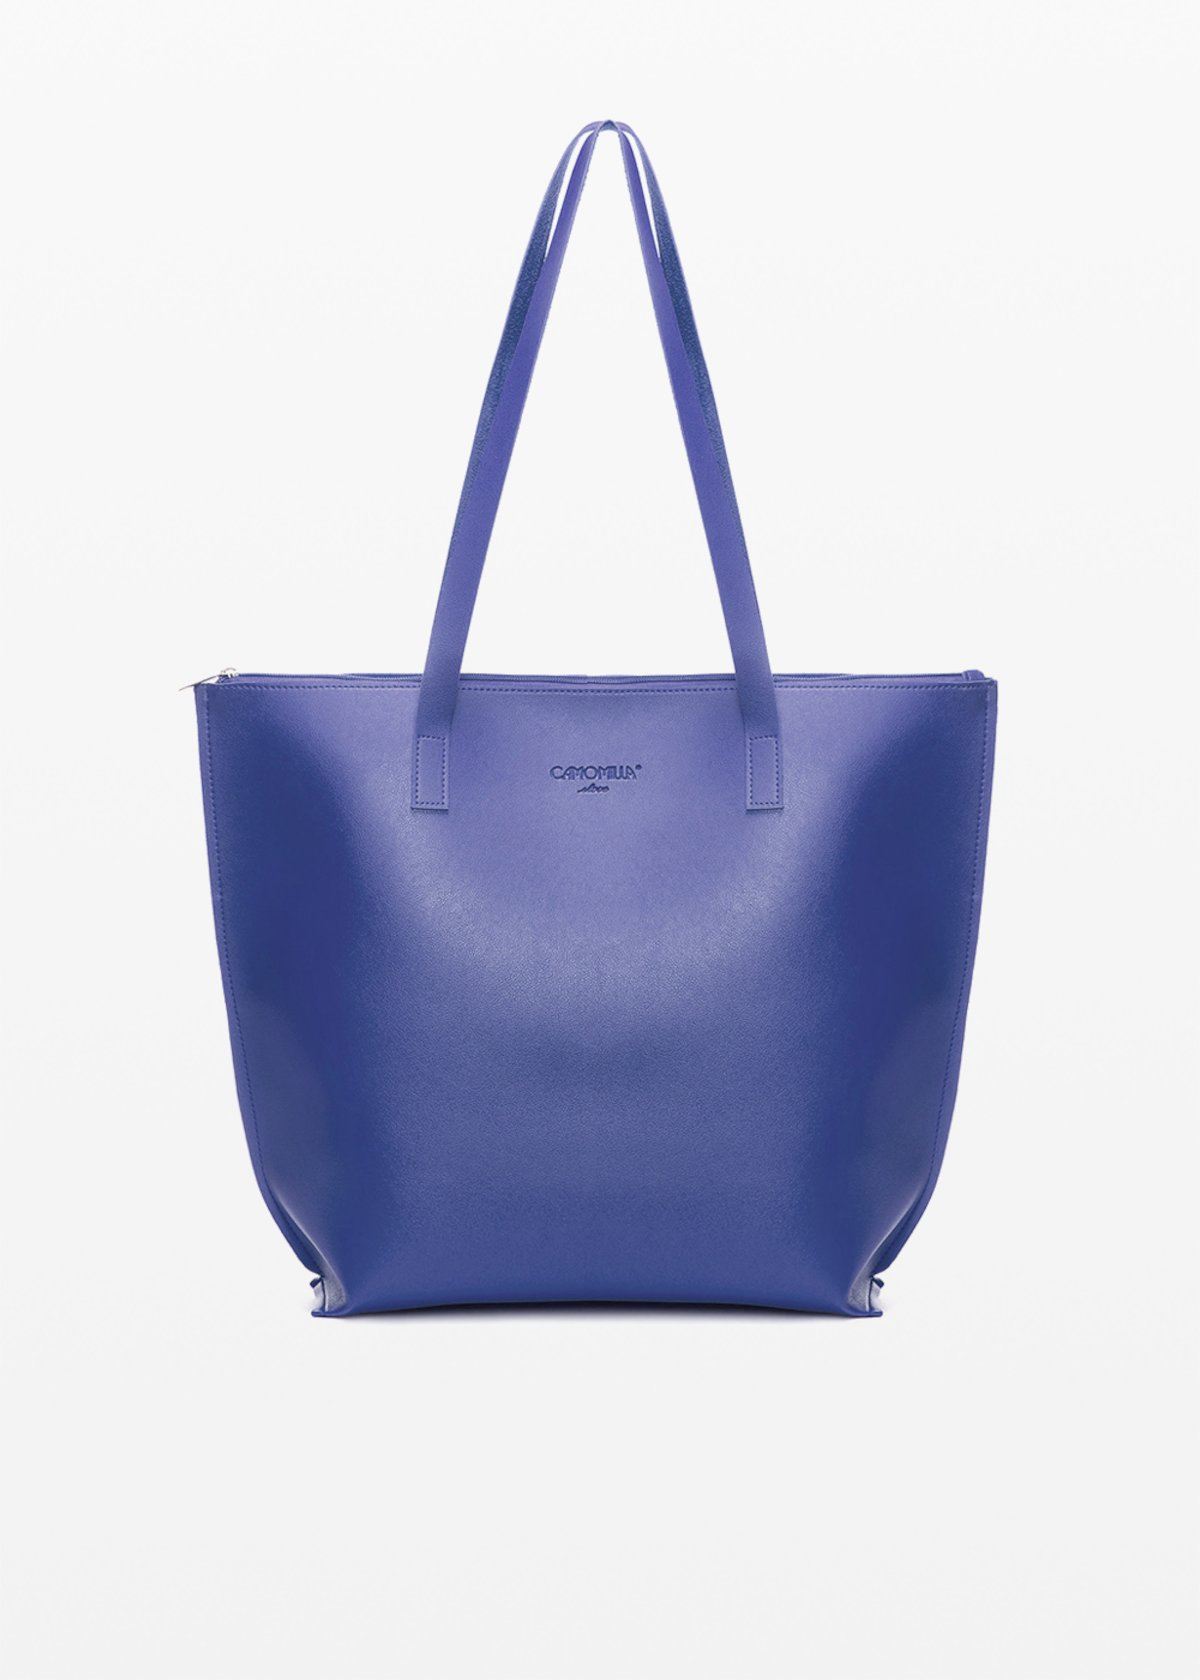 Shopping bag Bady6 in ecopelle sfoderata con doppi manici - Blue / Mineral - Donna - Immagine categoria